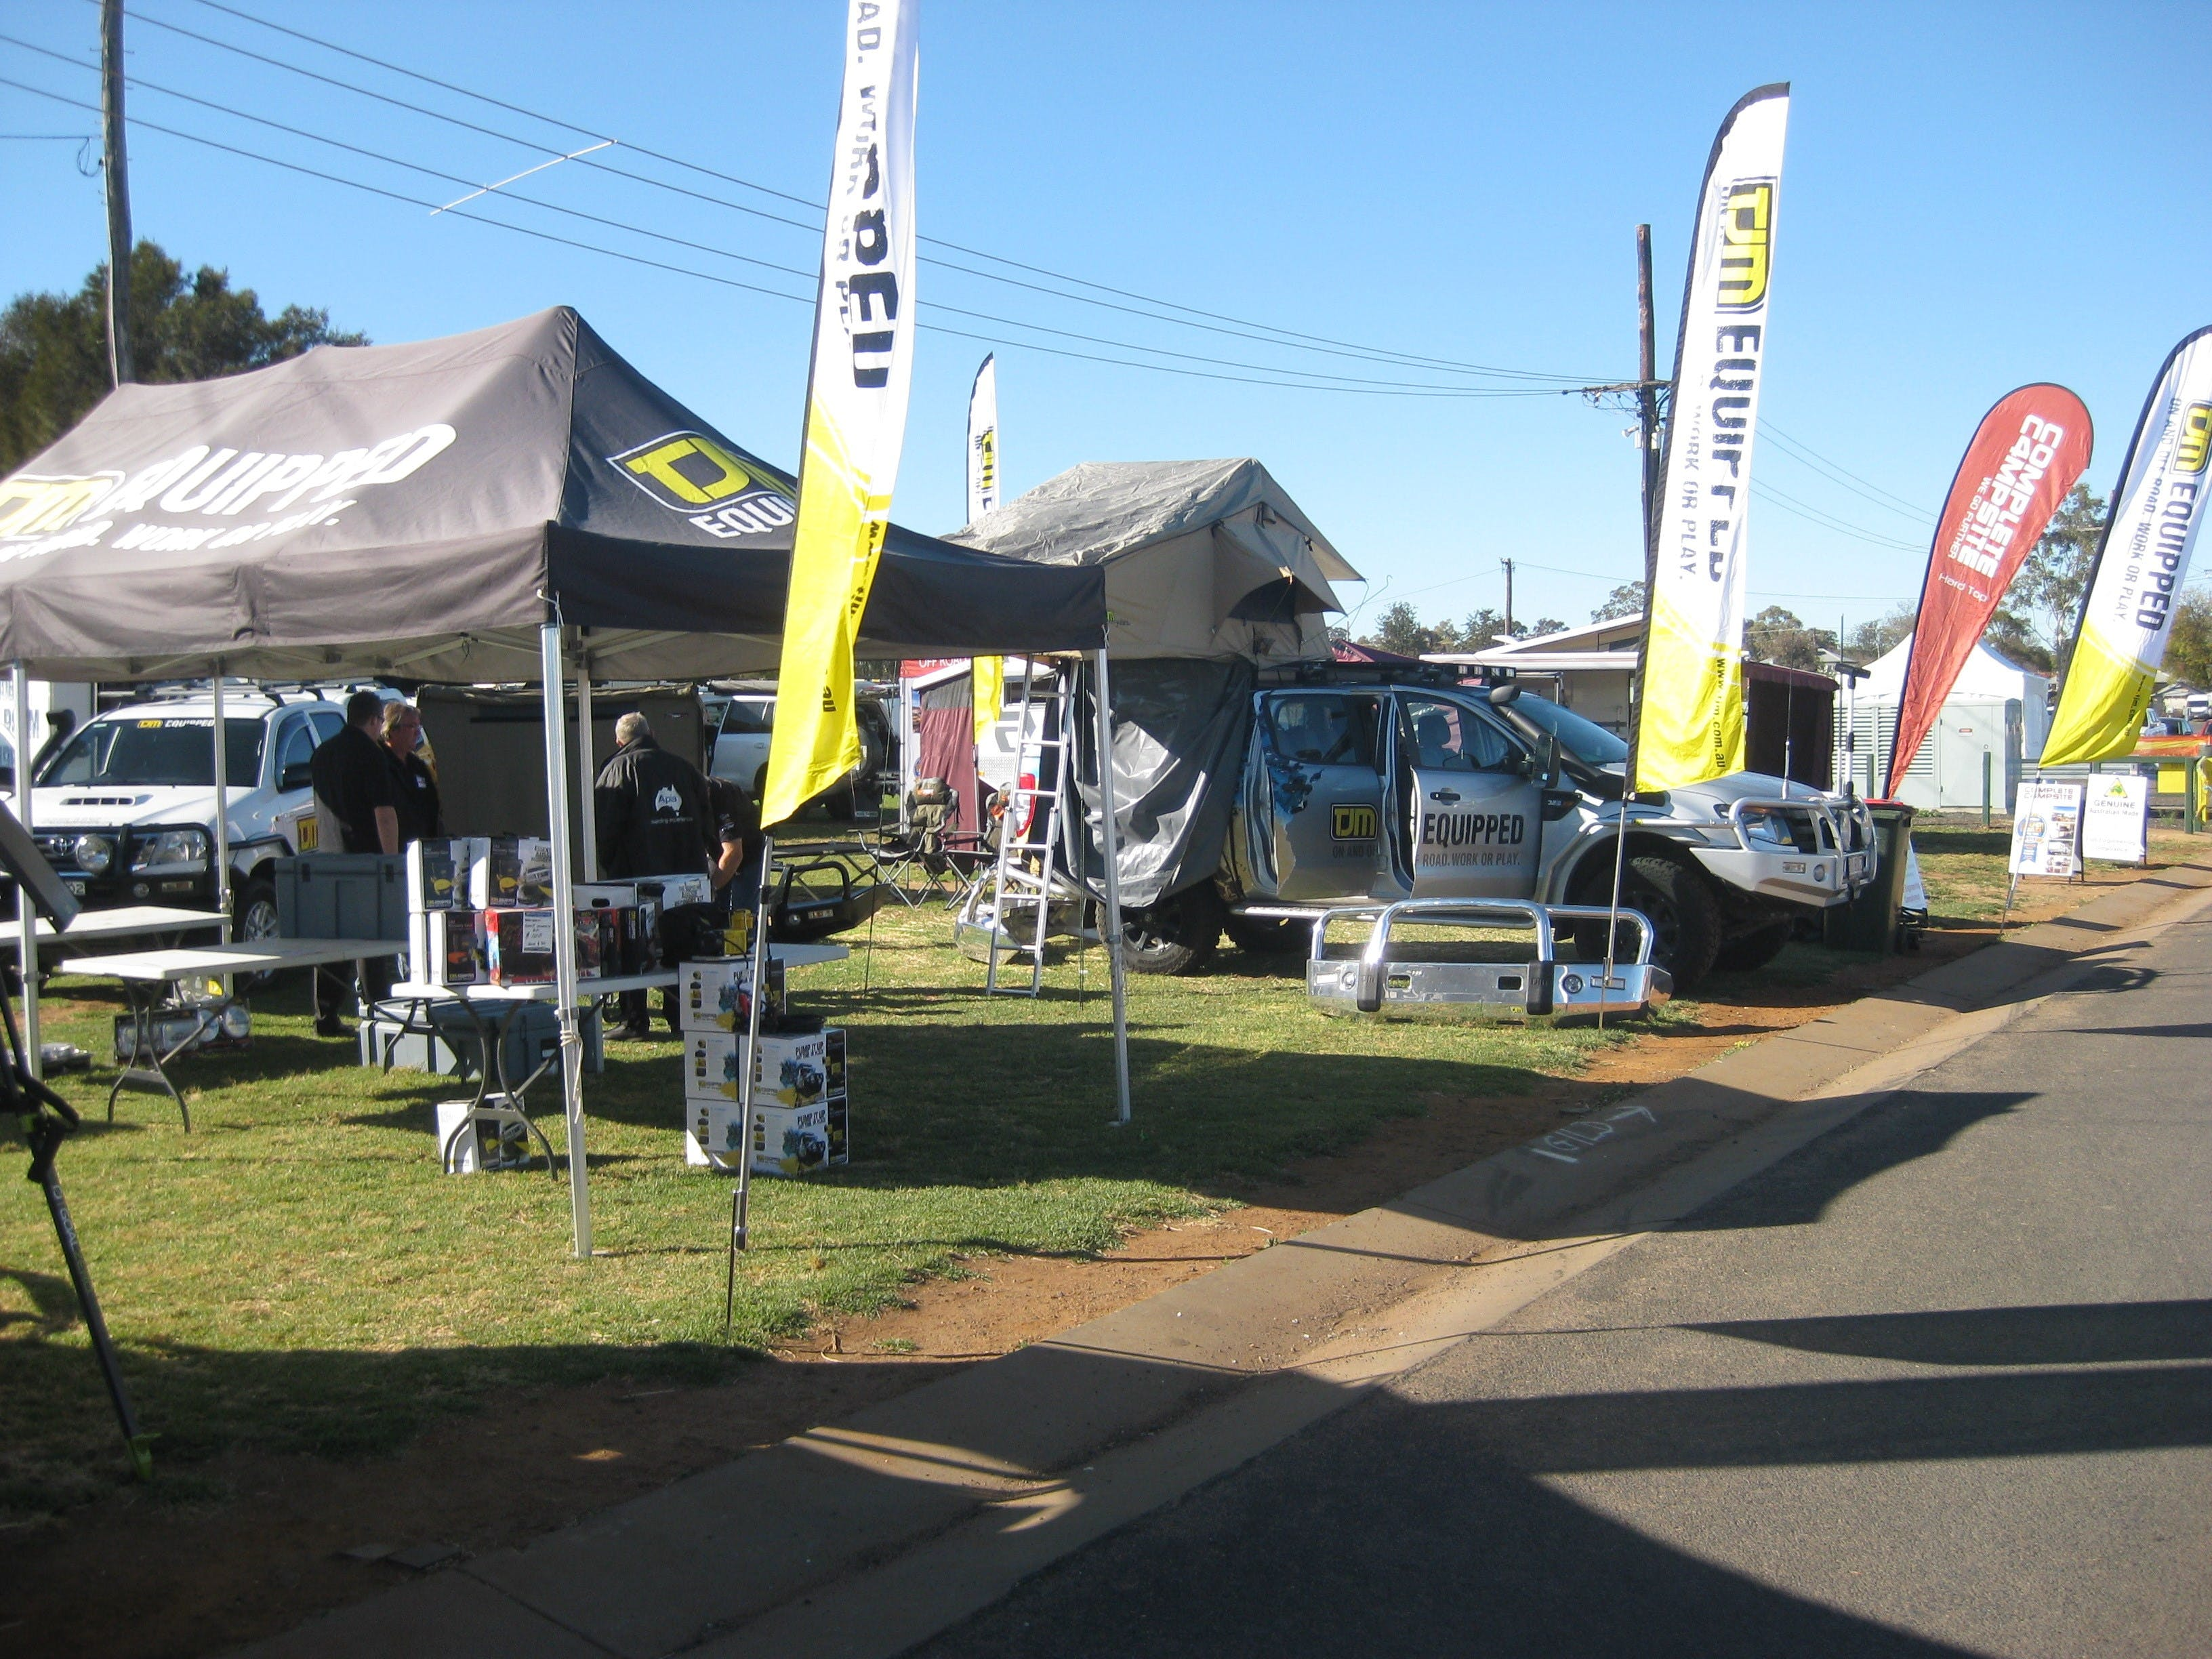 Orana Caravan Camping 4WD Fish and Boat Show - Accommodation in Surfers Paradise